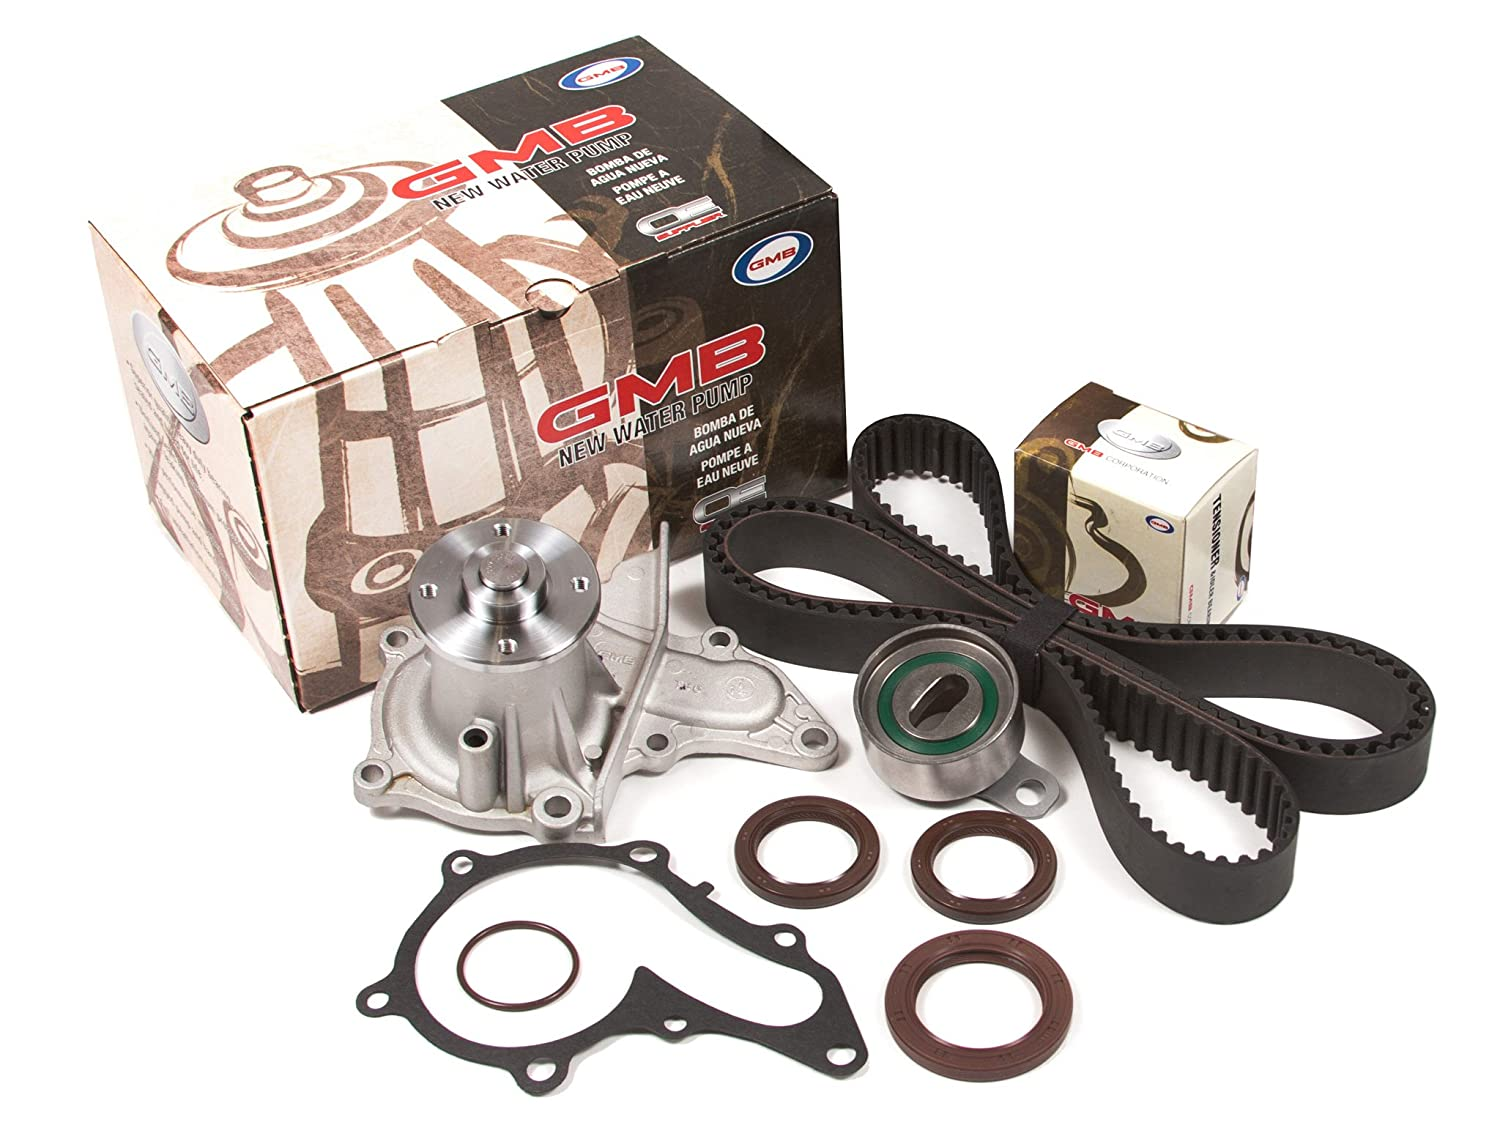 Evergreen TBK235WP Fits 93-97 Toyota Corolla Celica Geo Prizm 1.8L DOHC 7AFE Timing Belt Kit GMB Water Pump Evergreen Parts And Components